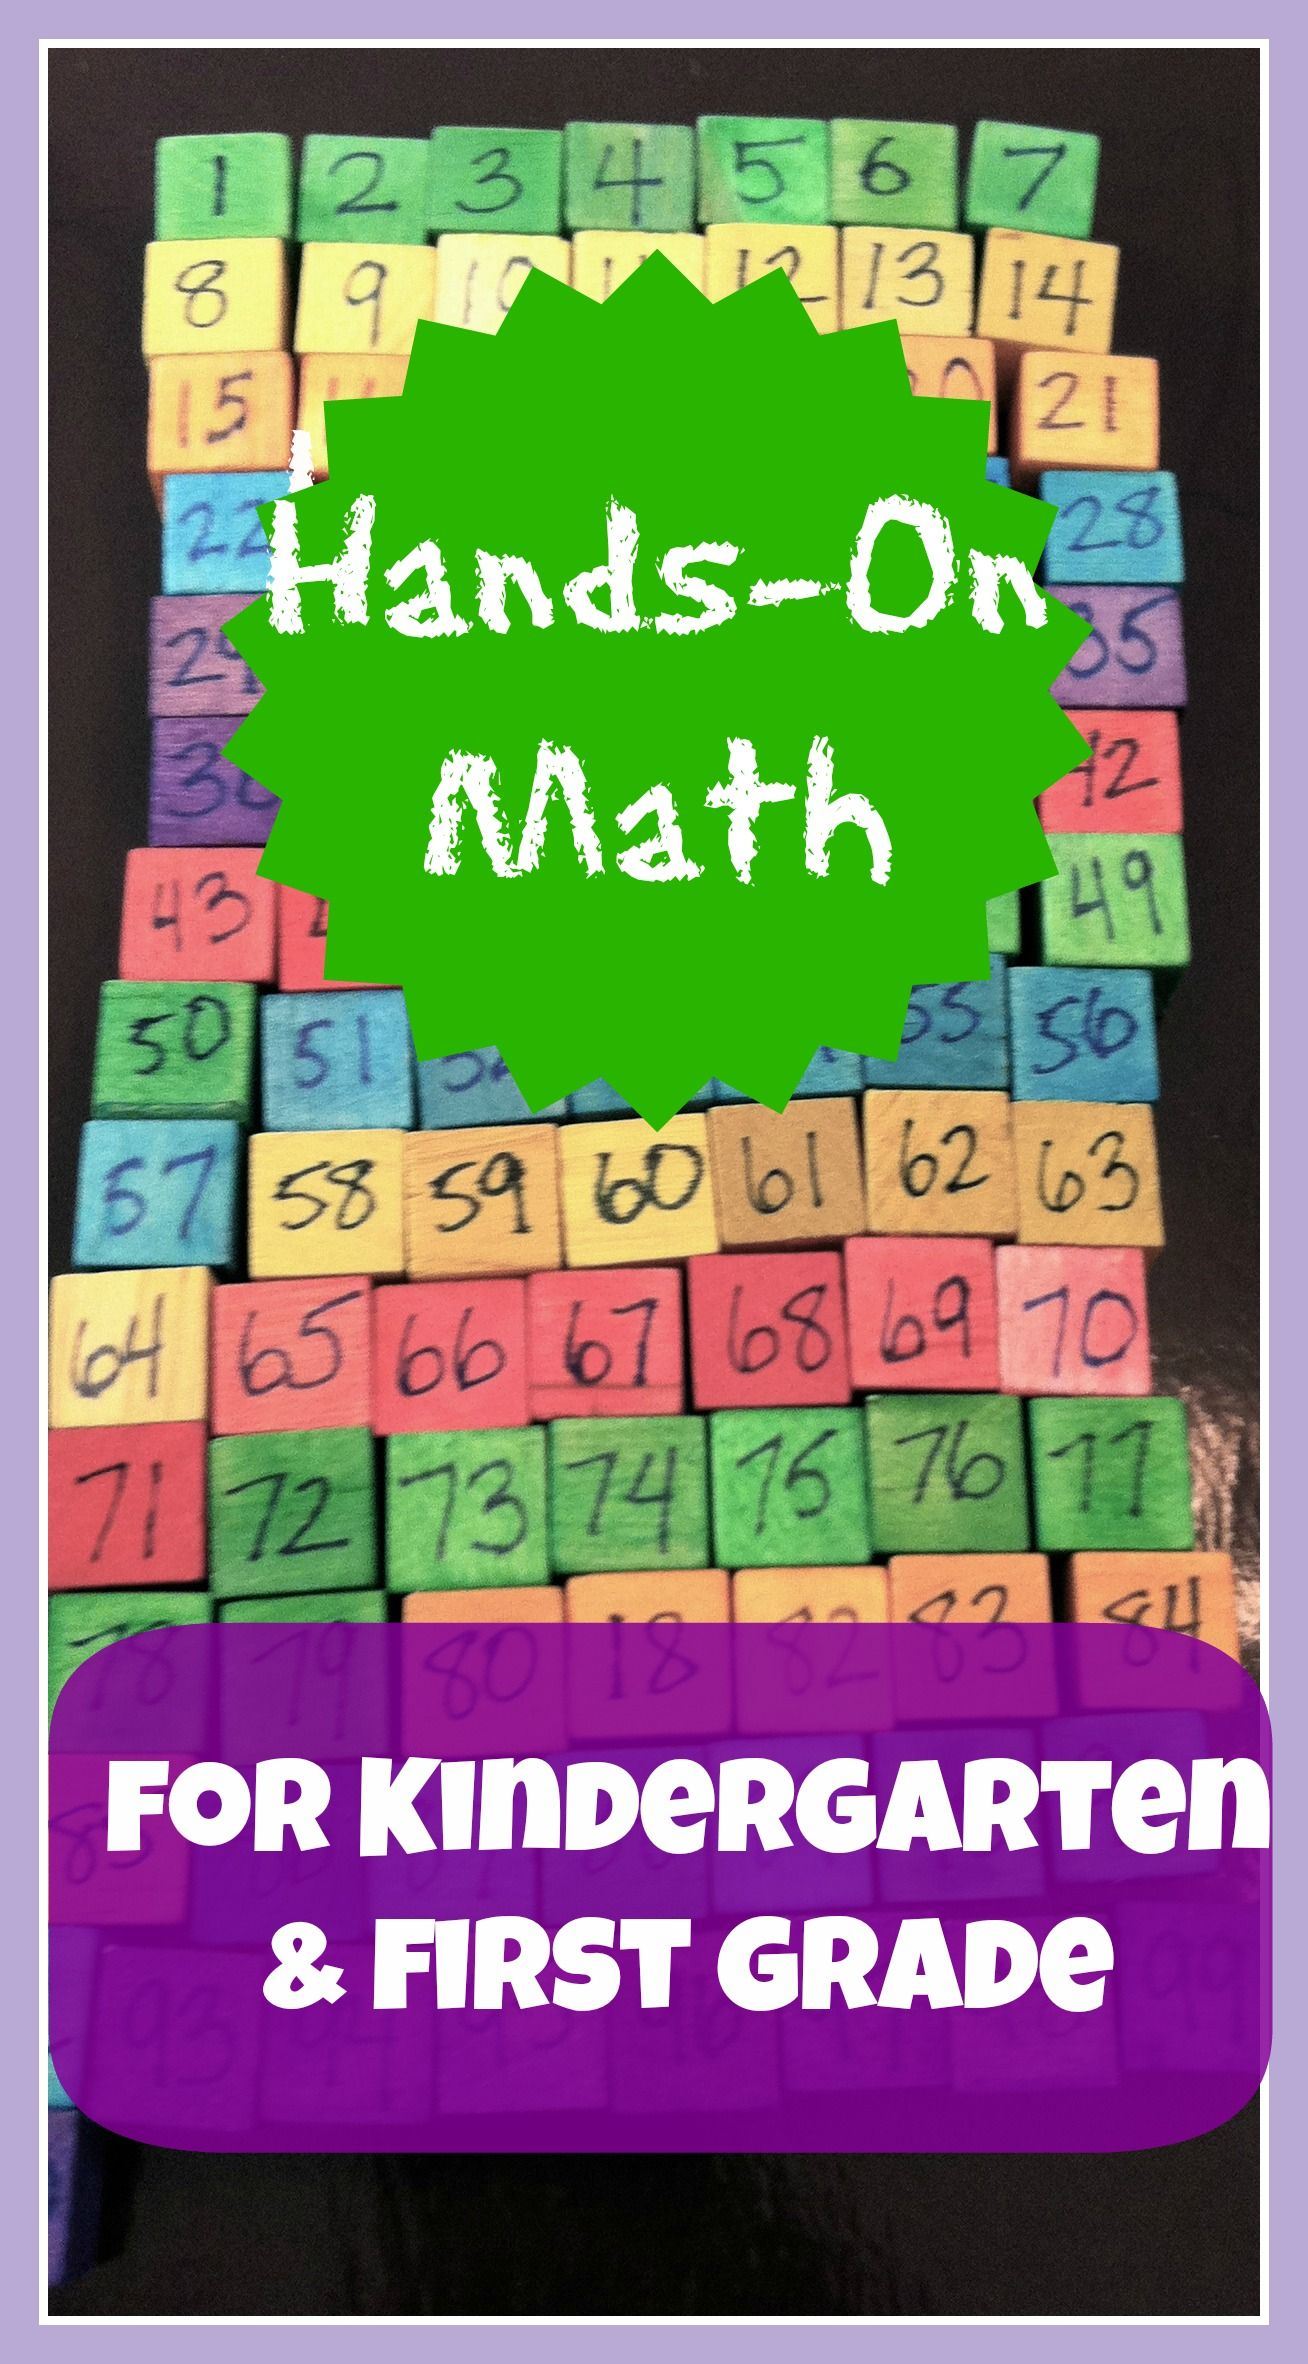 Hands On Math Learning For Kindergarten And First Grade Kid